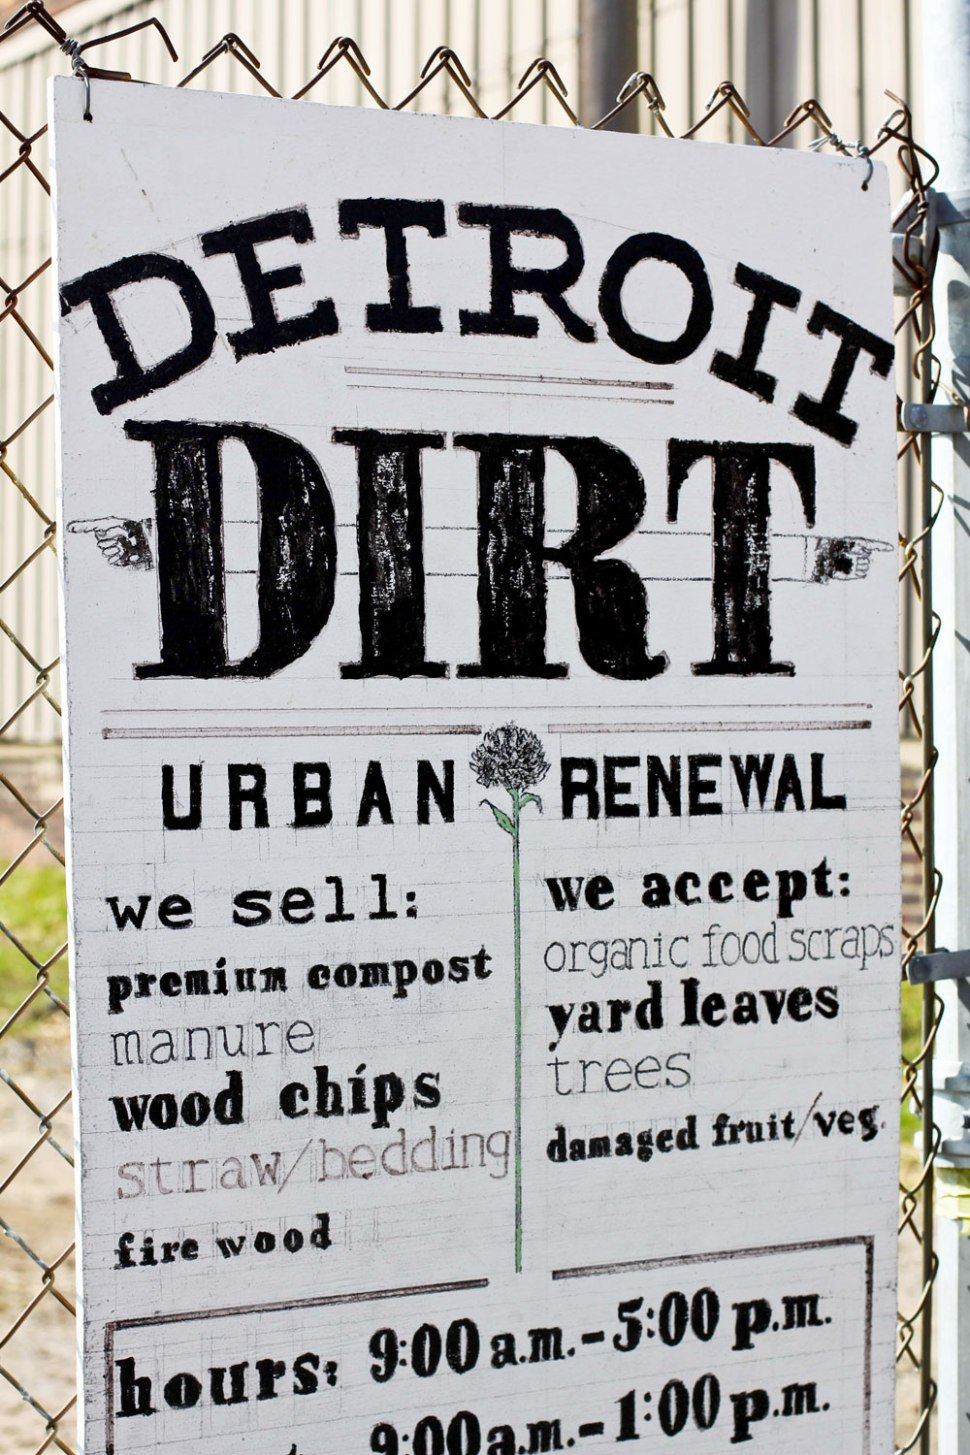 Detroit Dirt and Carhartt